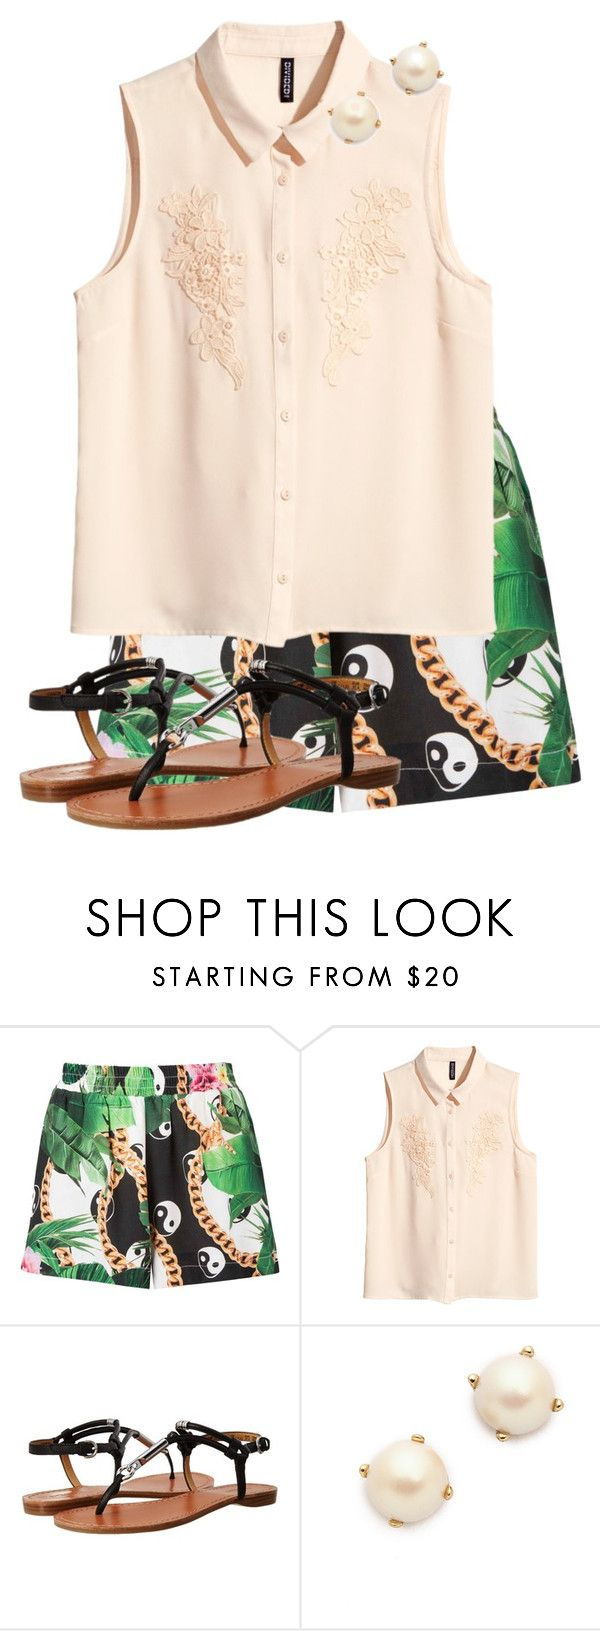 """Paying With Love"" by glittergirlawk ❤ liked on Polyvore featuring H&M, Coach and Kate Spade"